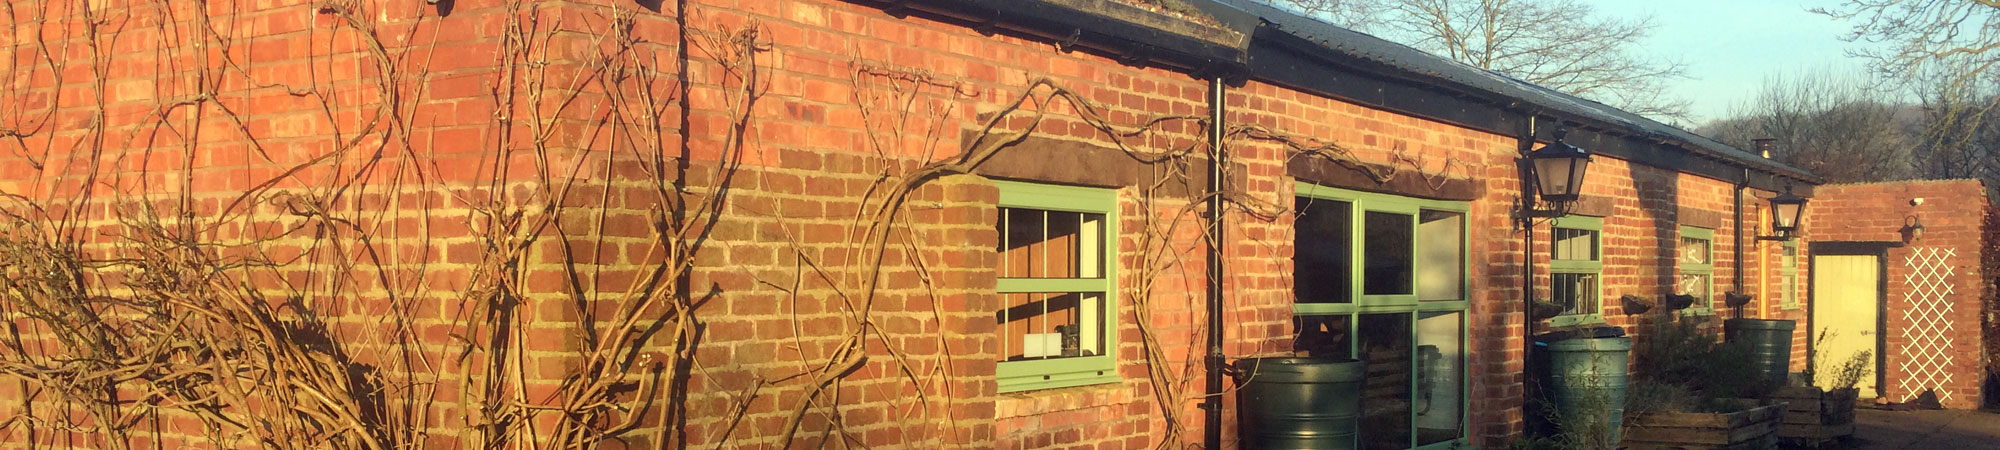 Forge Property Consultants premises in Shropshire